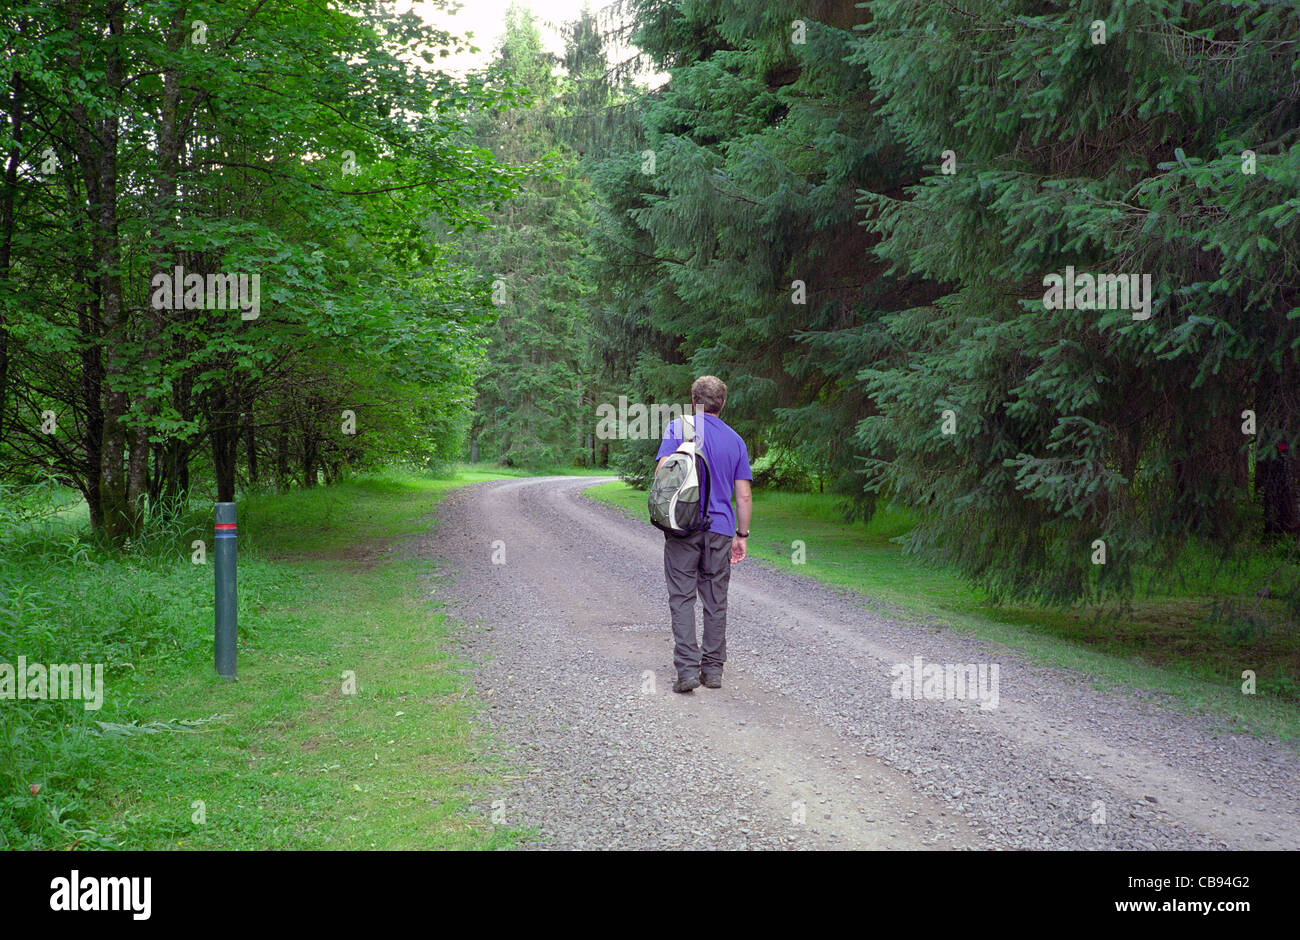 Caucasain Adult Male Walker Walking Through the Forest of Ae, Dumfries & Galloway, Scotland, UK MODEL RELEASED - Stock Image